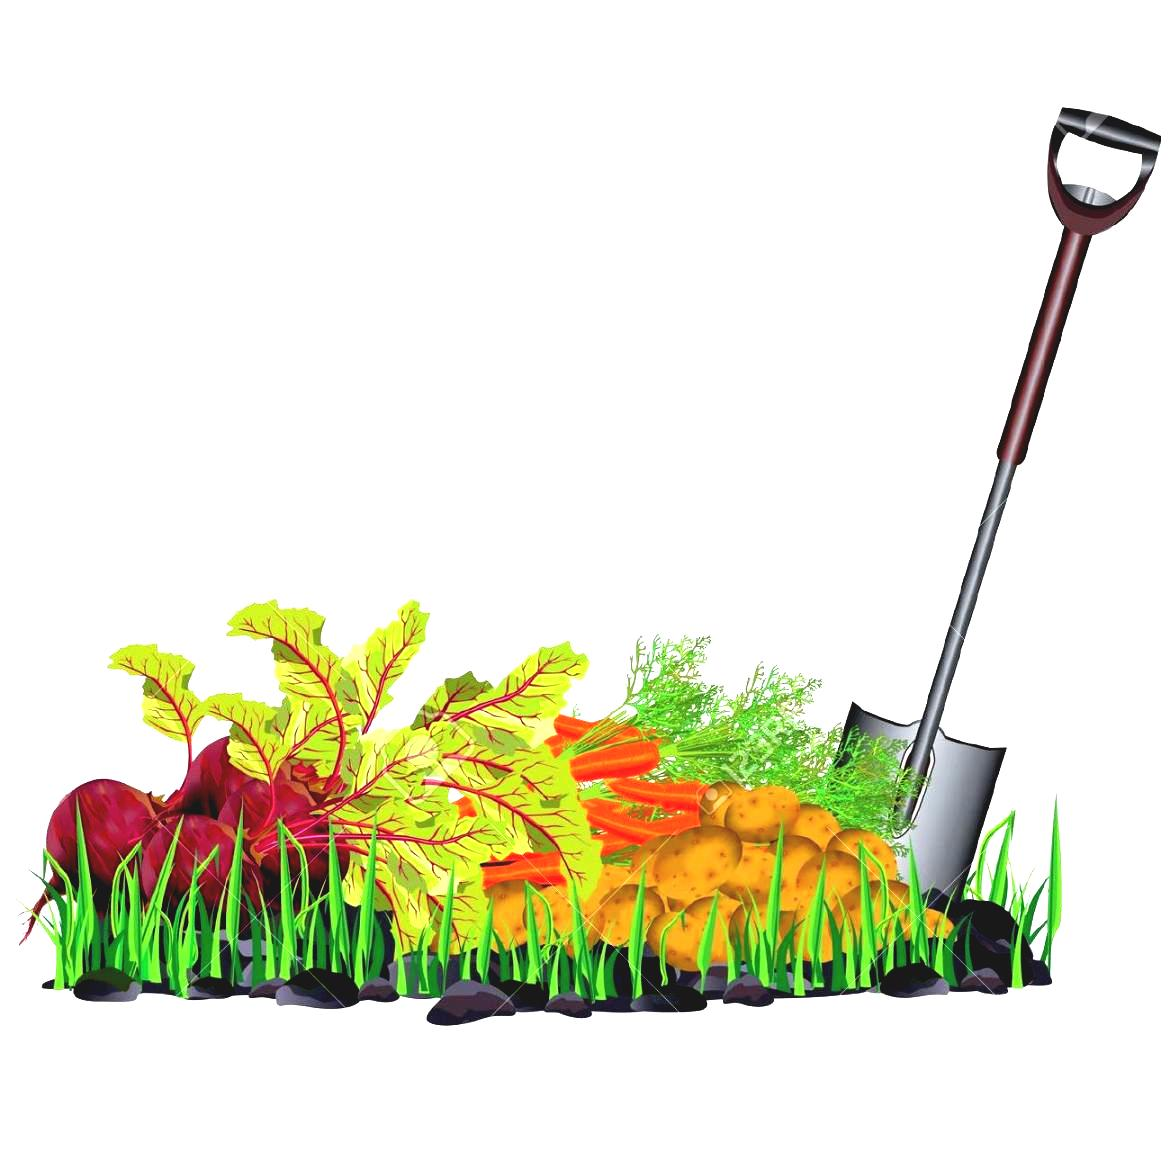 1170x1170 Vegetables Clipart Vegetable Patch